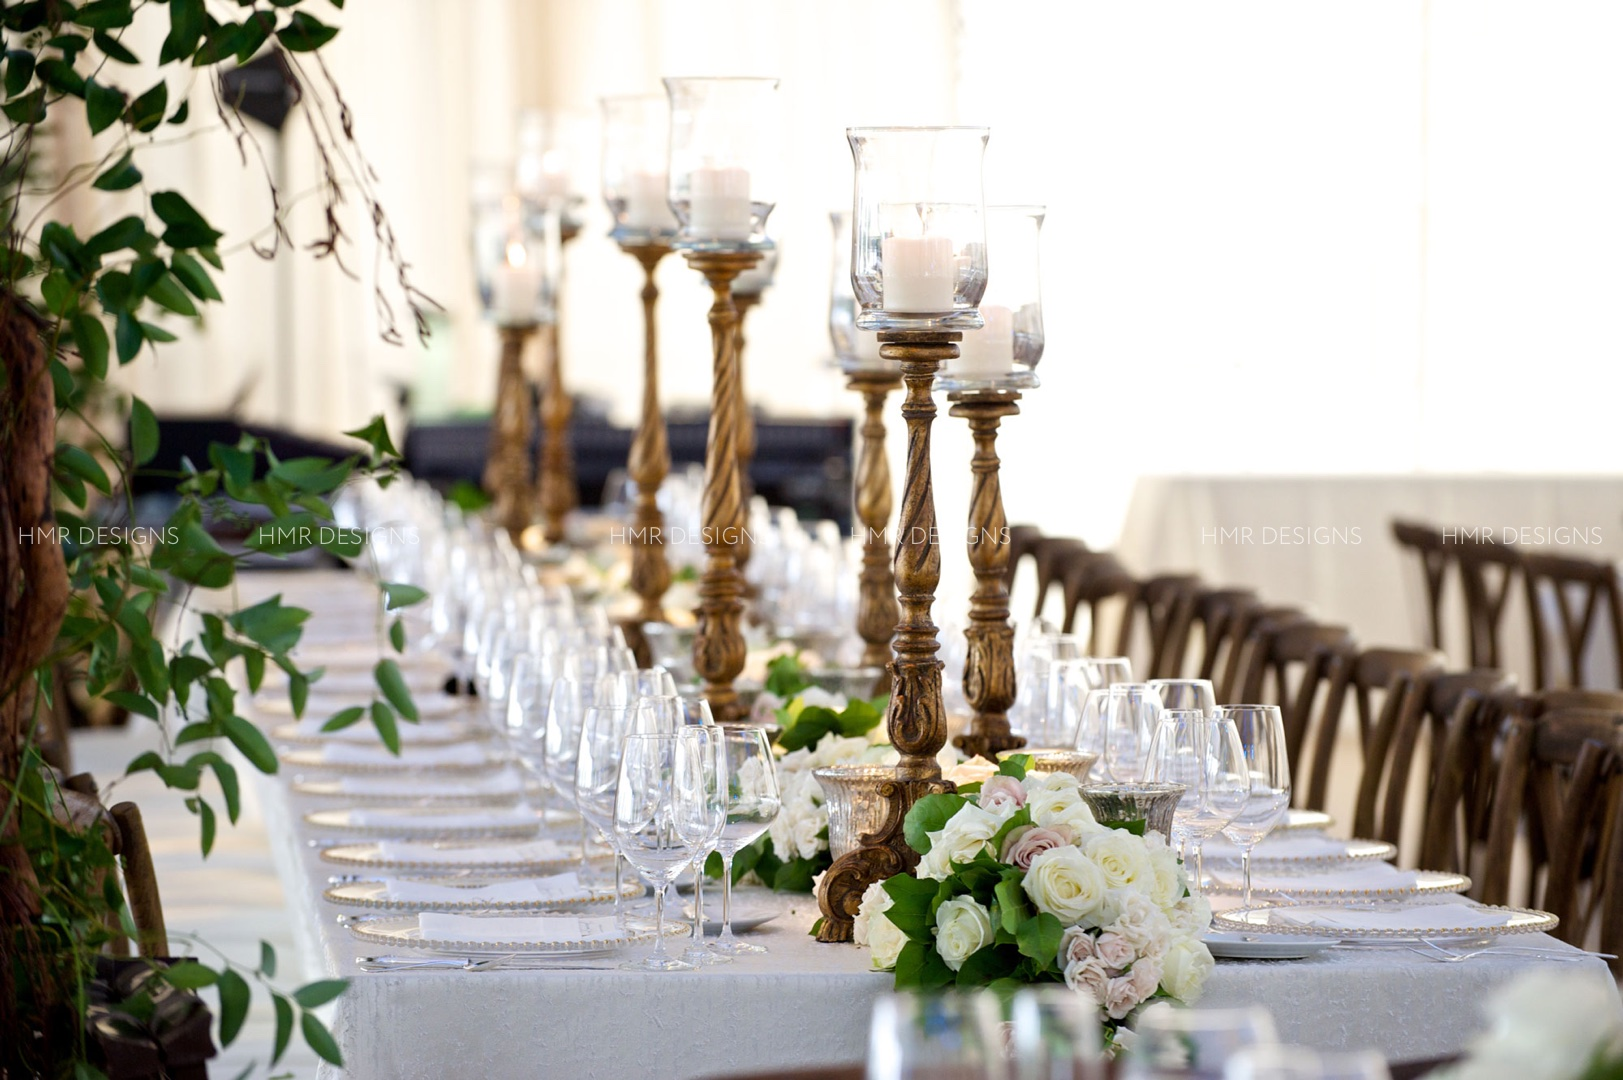 Gold candlesticks, greenery and roses line the long tables of a tented summer wedding by HMR Designs